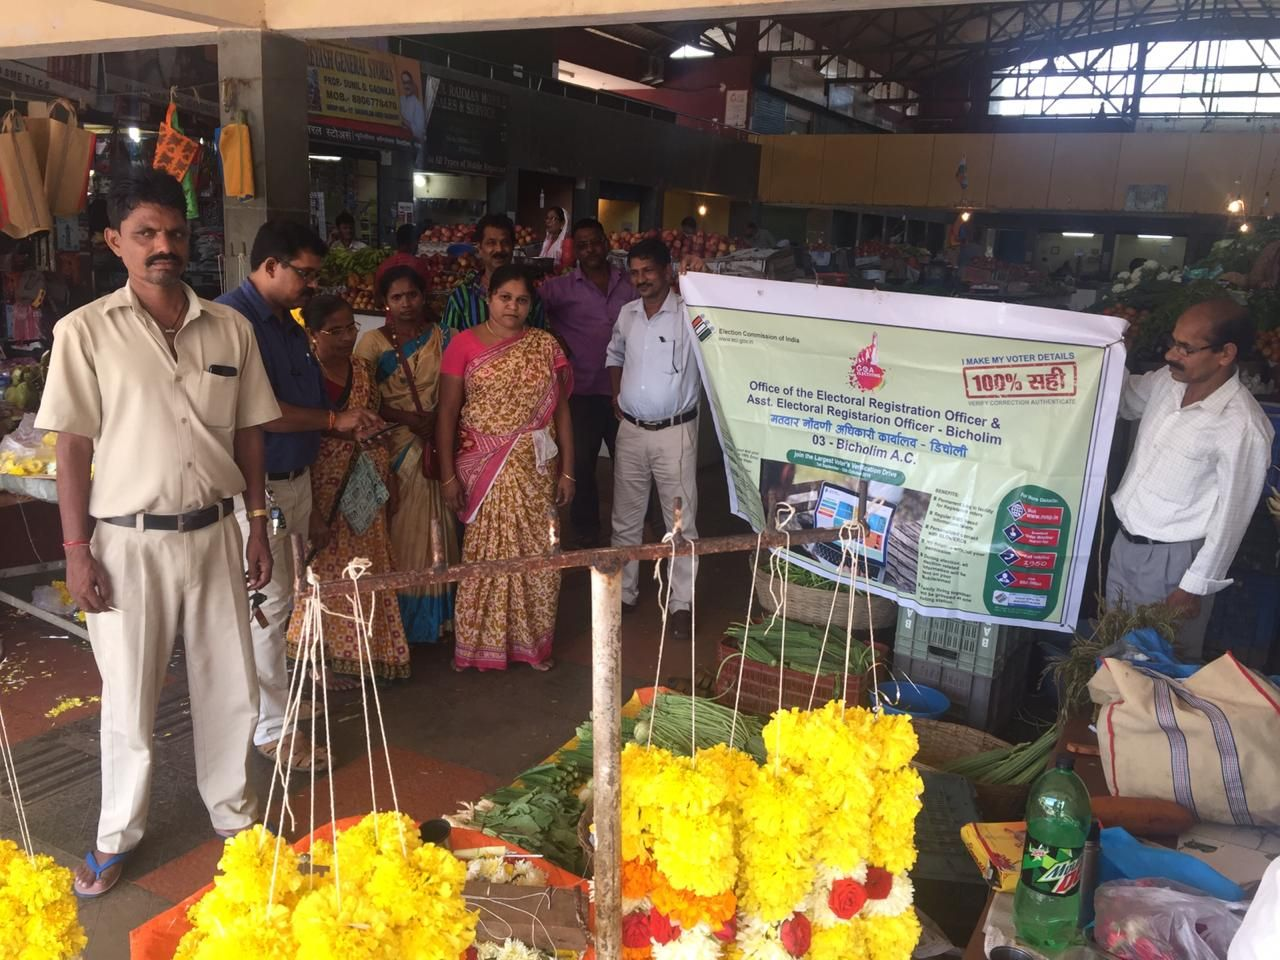 Awareness programme conducted in respect of Elector Verification Programme by team 03 Bicholim A.C on 23.9.2019 at Market area Bicholim. The information in respect of Elector Verification  through the  usage of Voter Helpline app or National Voter Service